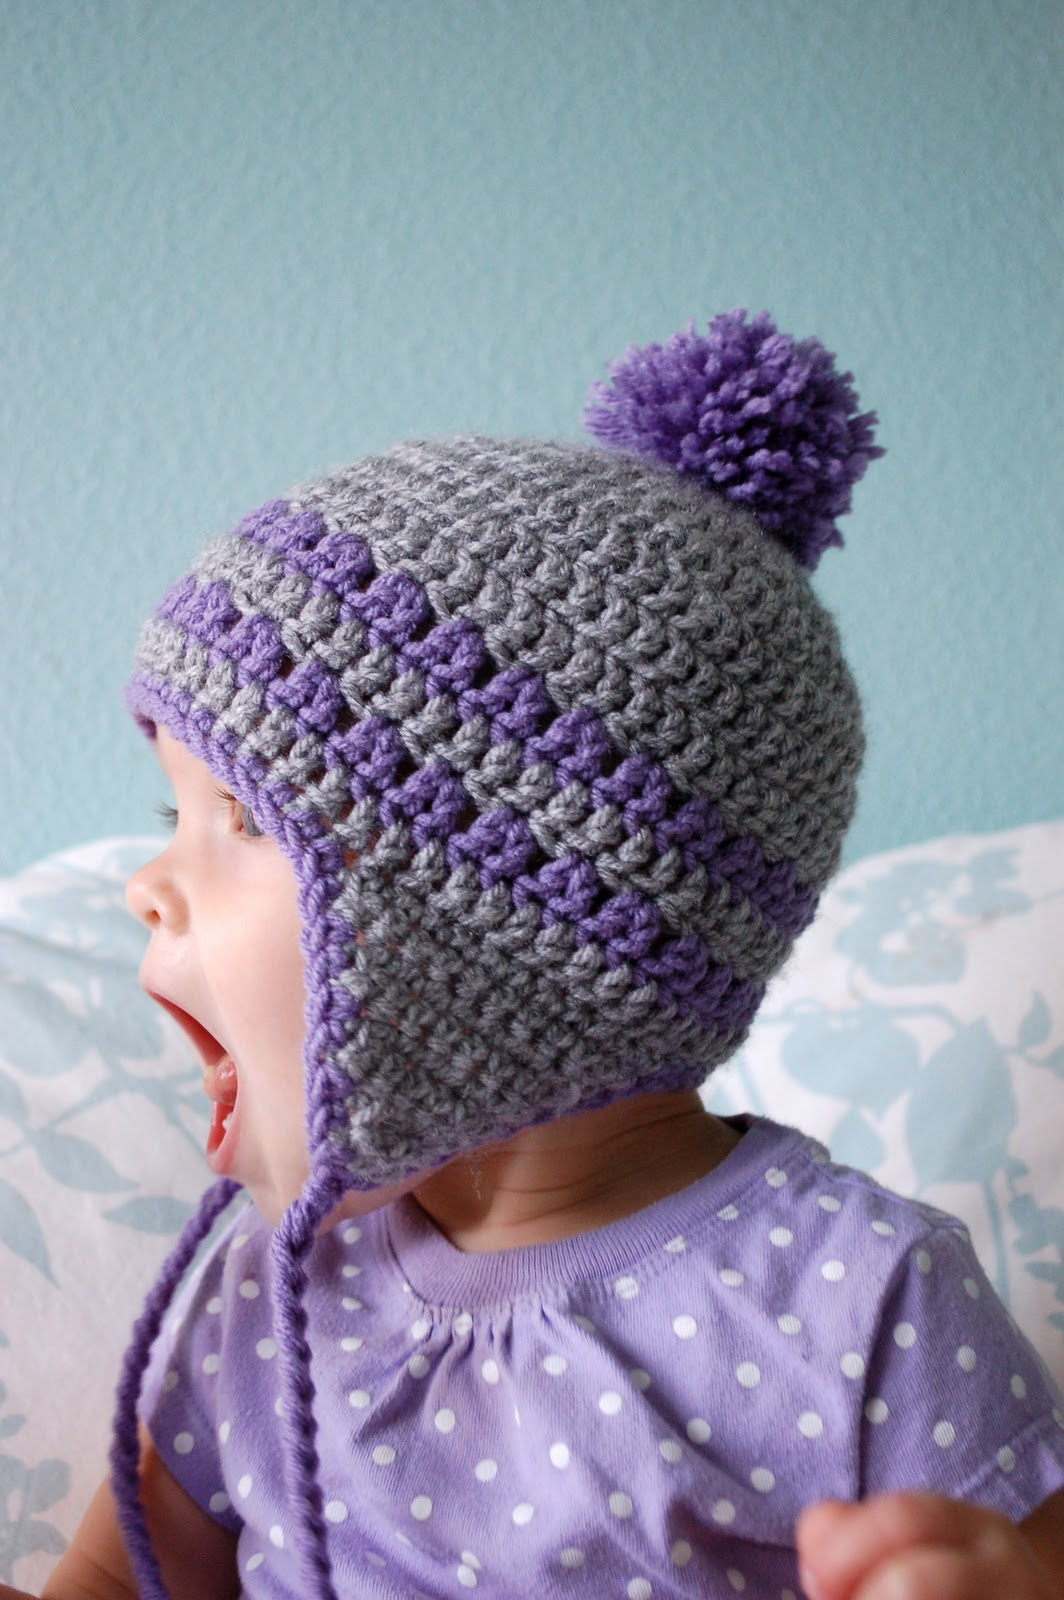 Free Knitting Patterns For Toddler Earflap Hats : Alli Crafts: Free Pattern: Earflap Hat - 9-12 Months